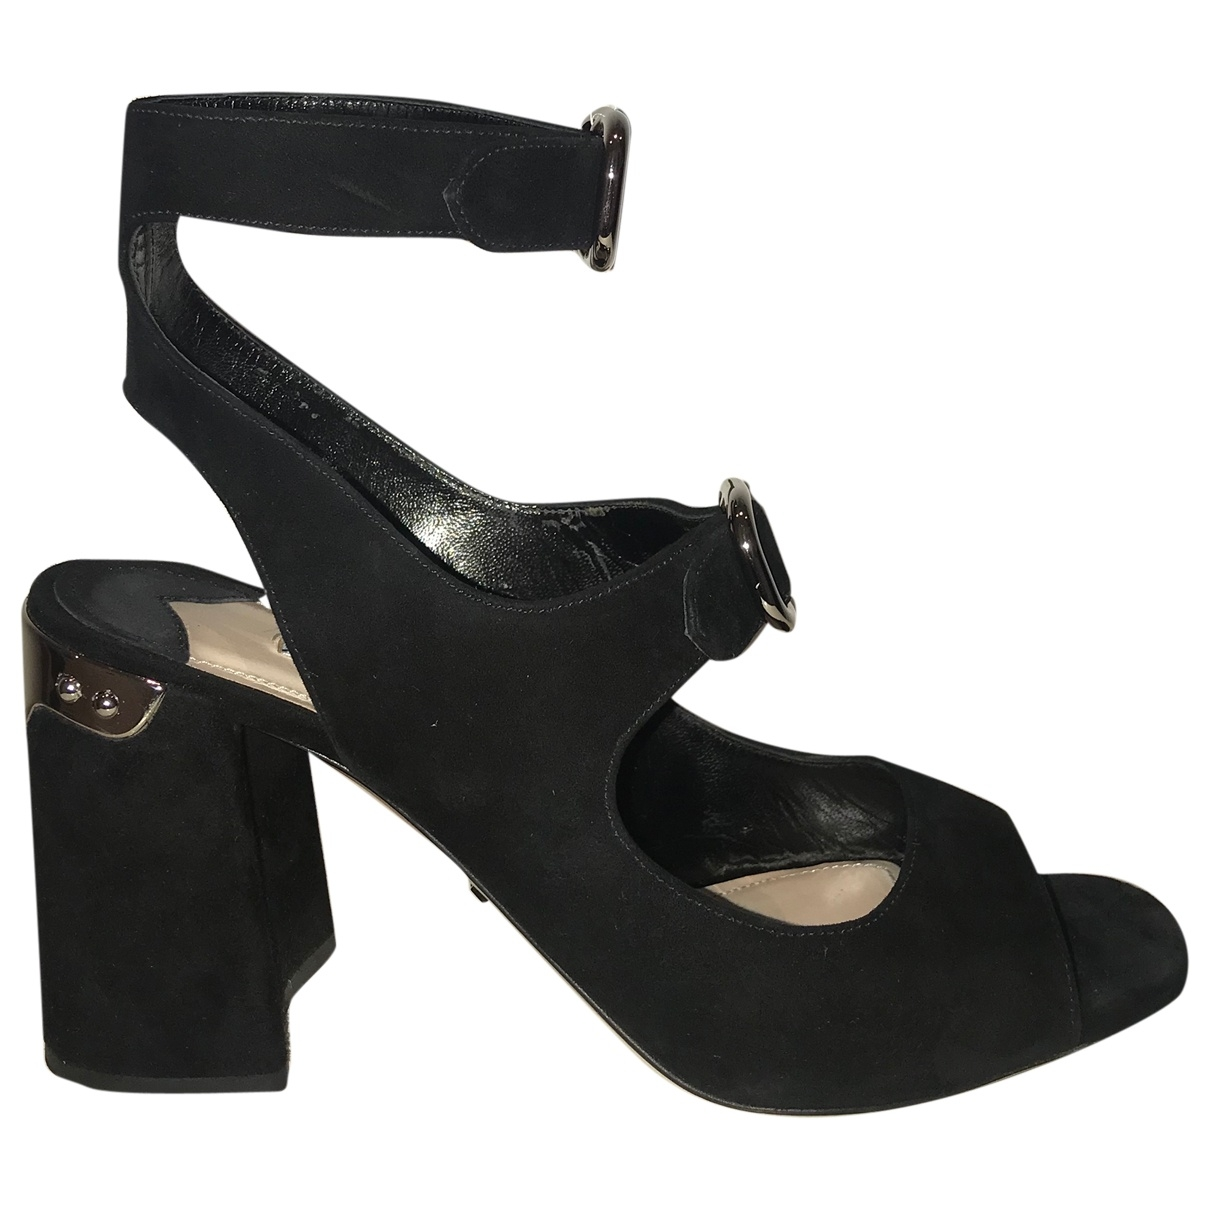 Prada \N Black Suede Sandals for Women 38.5 EU